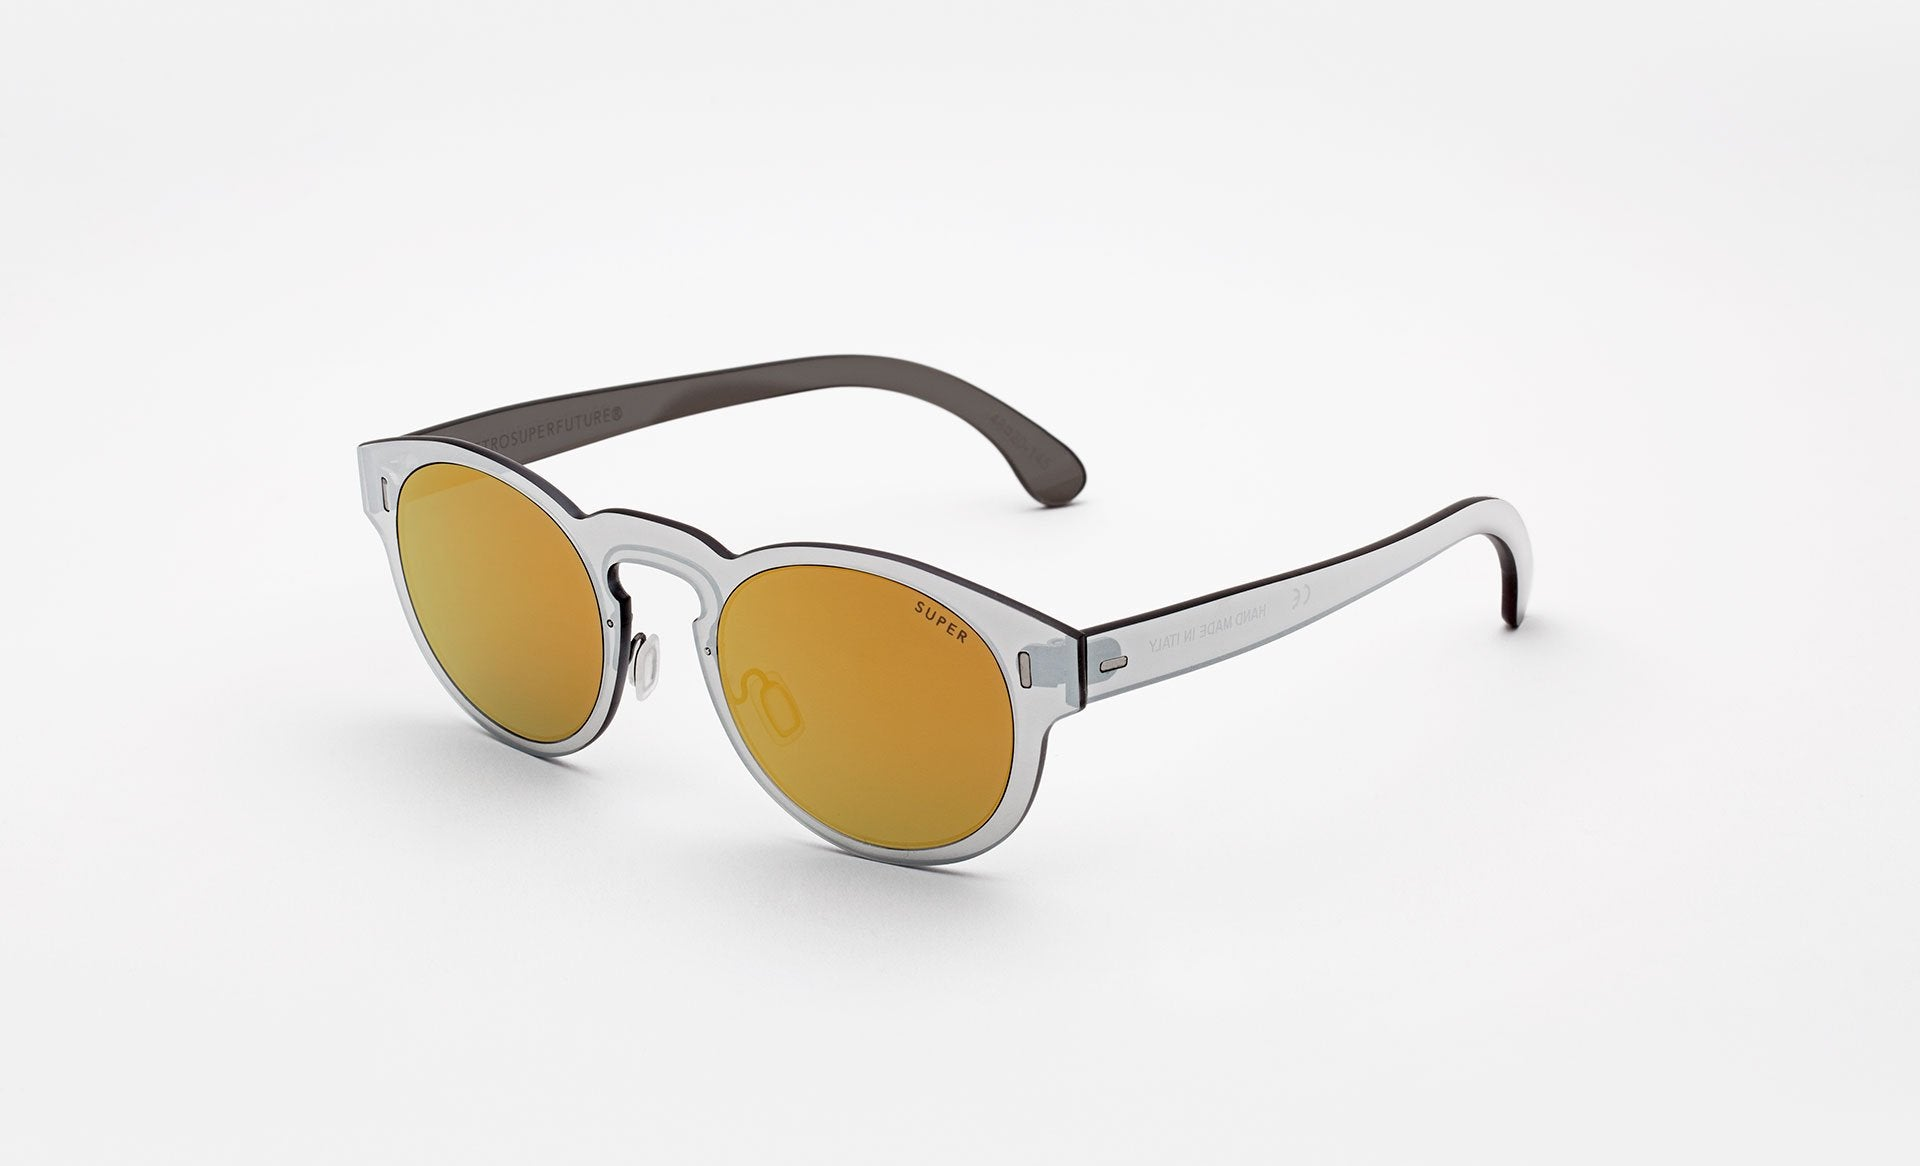 Super - Duo Lens Paloma 48mm Silver Sunglasses / Gold Lenses